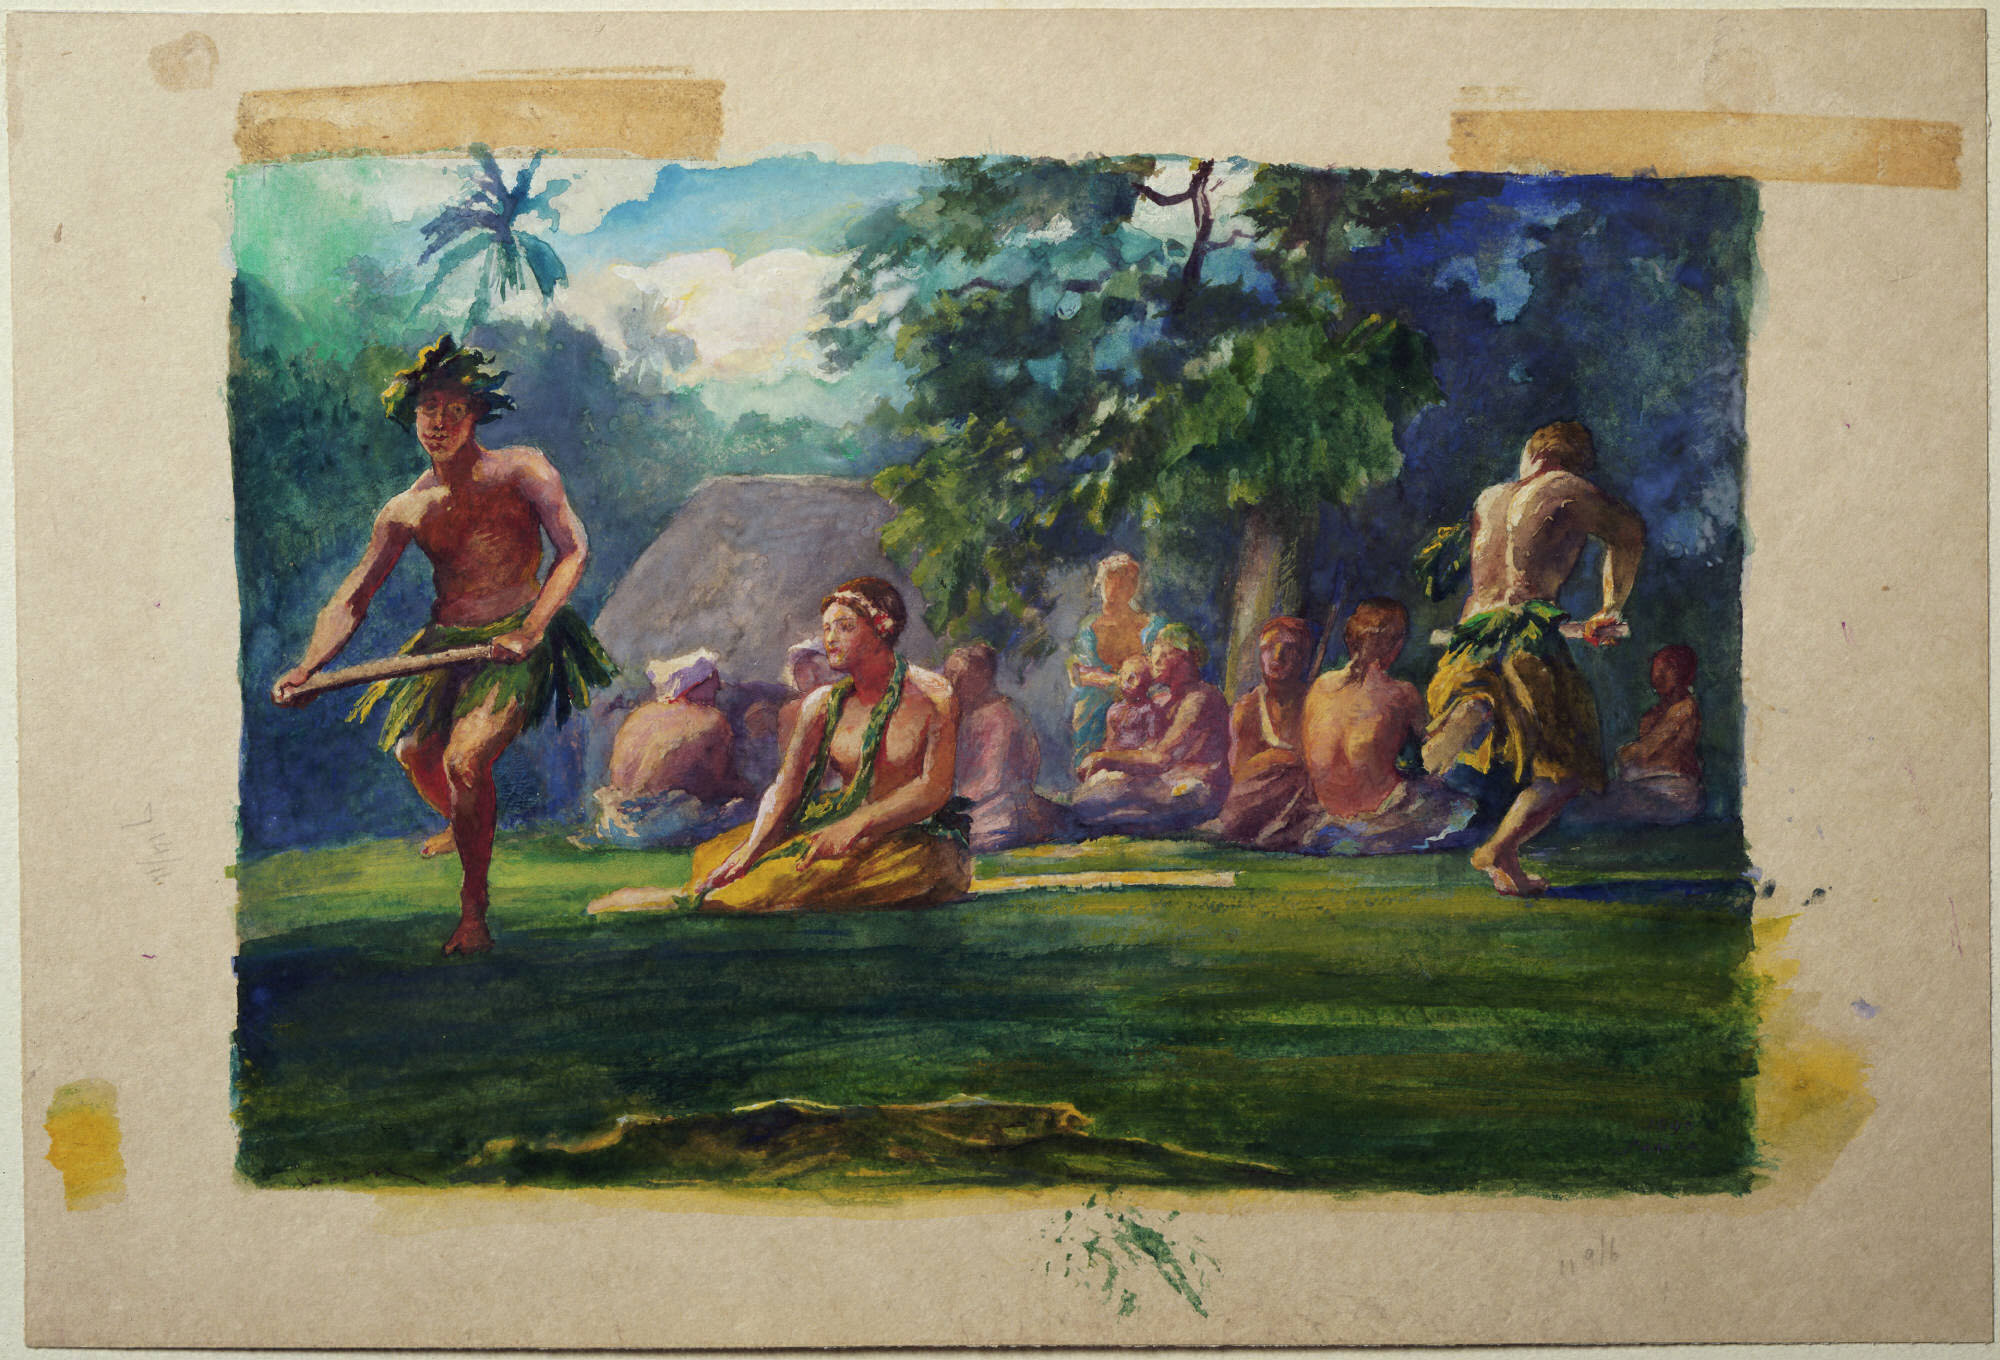 John La Farge, American, 1835–1910: Taupo and Attendants Dancing in the Open Air, Iva in Savaii, Samoa, 1890. Gouache and watercolor. Gift of Frank Jewett Mather Jr. (x1948-1798).